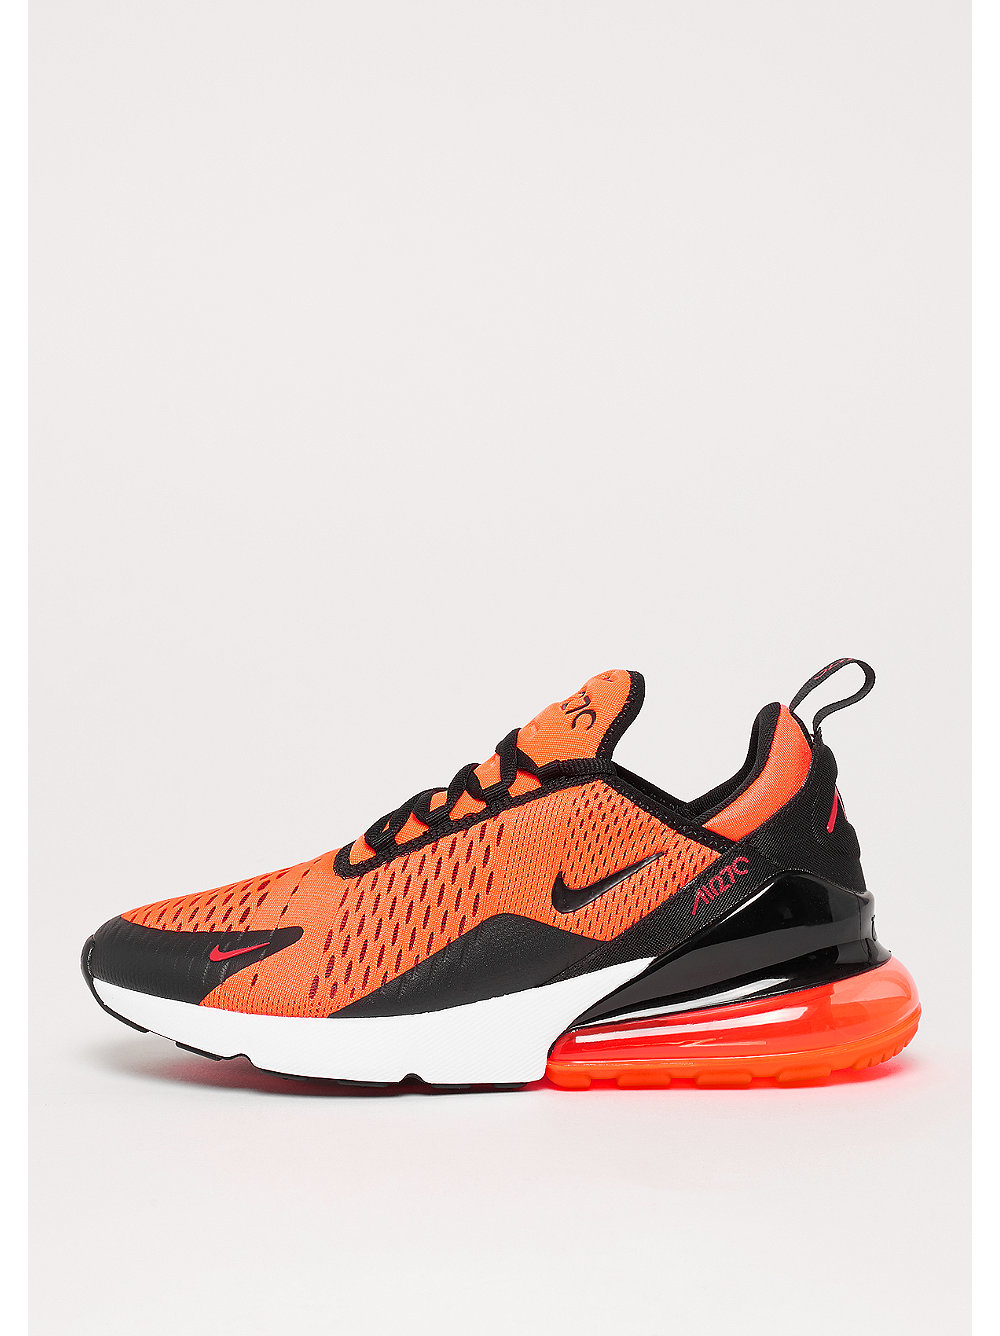 the best attitude 7502f 4461c Max 270 Team Bei Schuh Orange Snipes Nike Air g5CwPxnq